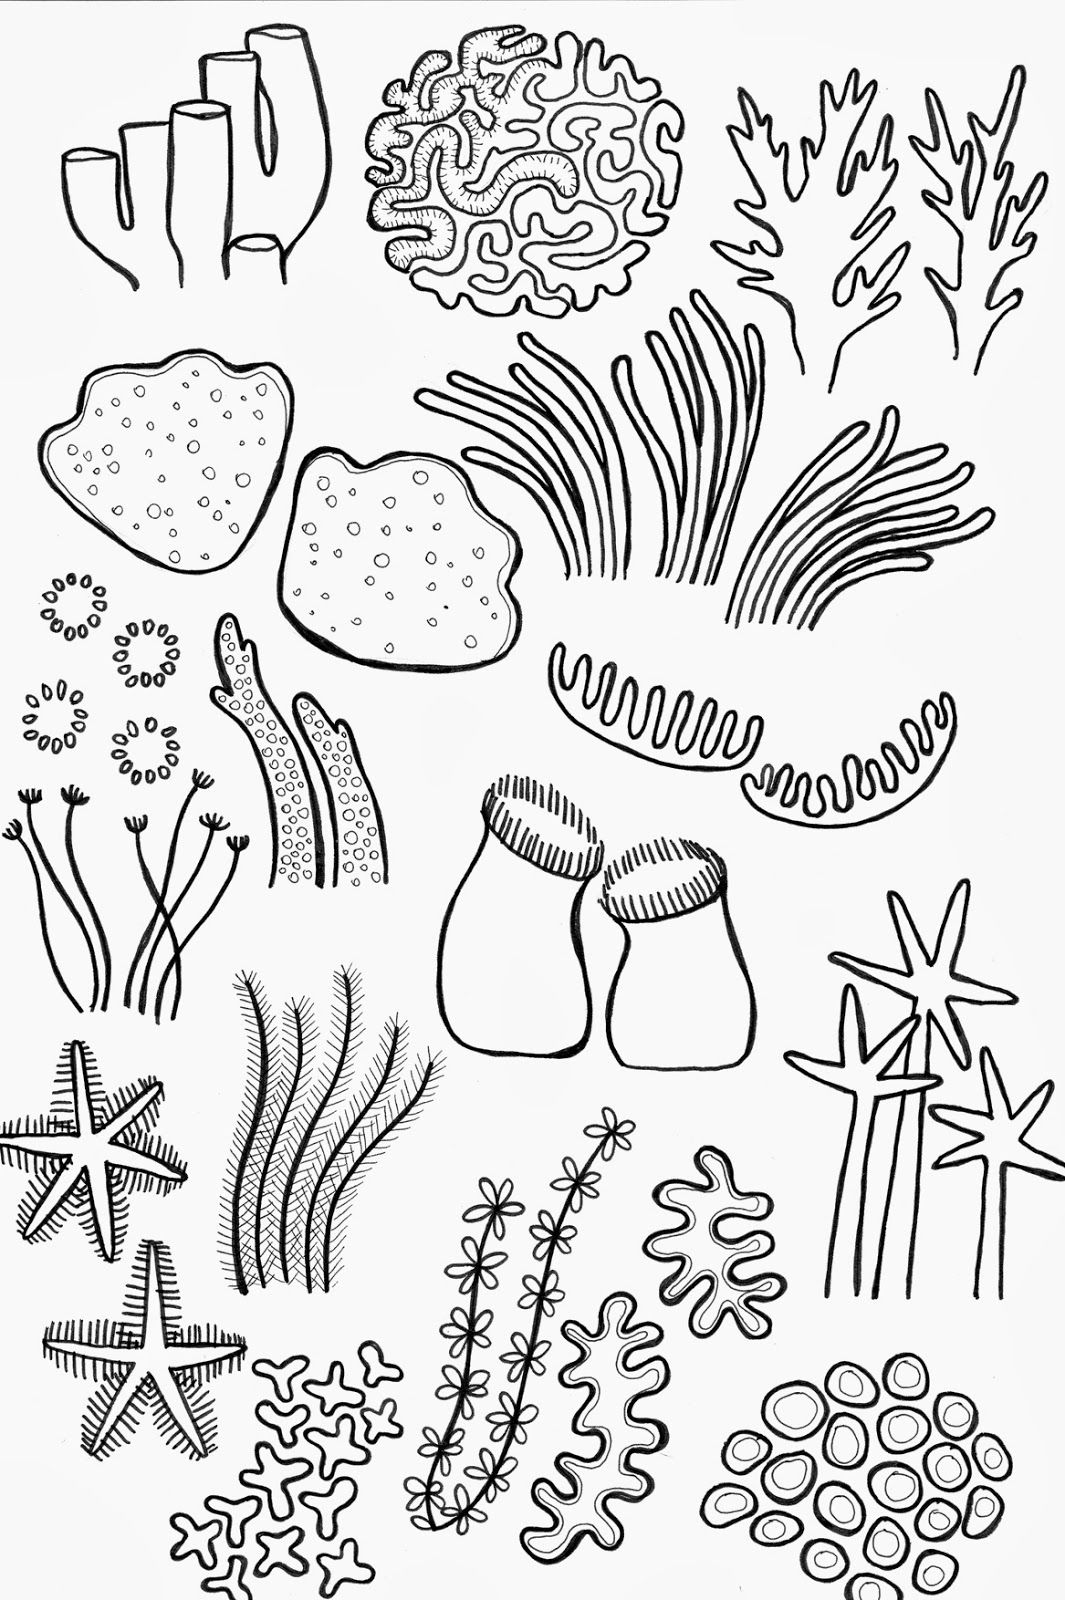 Coral Reef Line Drawing Drawing Underwater Coral Reef Coral Reef Pinterest Photo Coral Reef Line Drawing D Coral Reef Drawing Coral Reef Art Coral Drawing